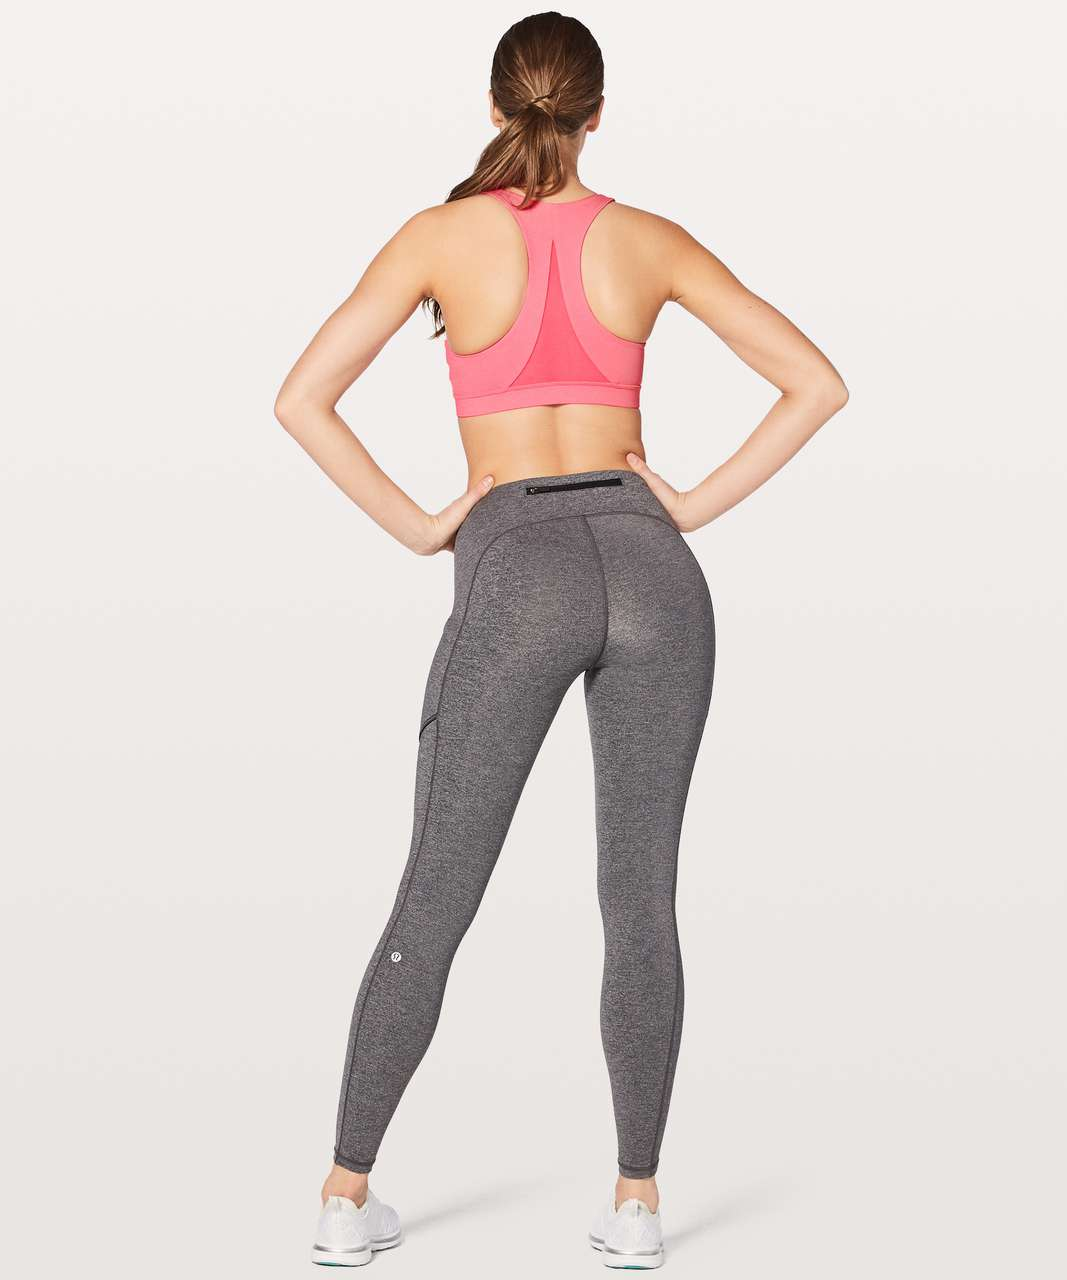 Lululemon Invigorate Bra - Flash Light Tone